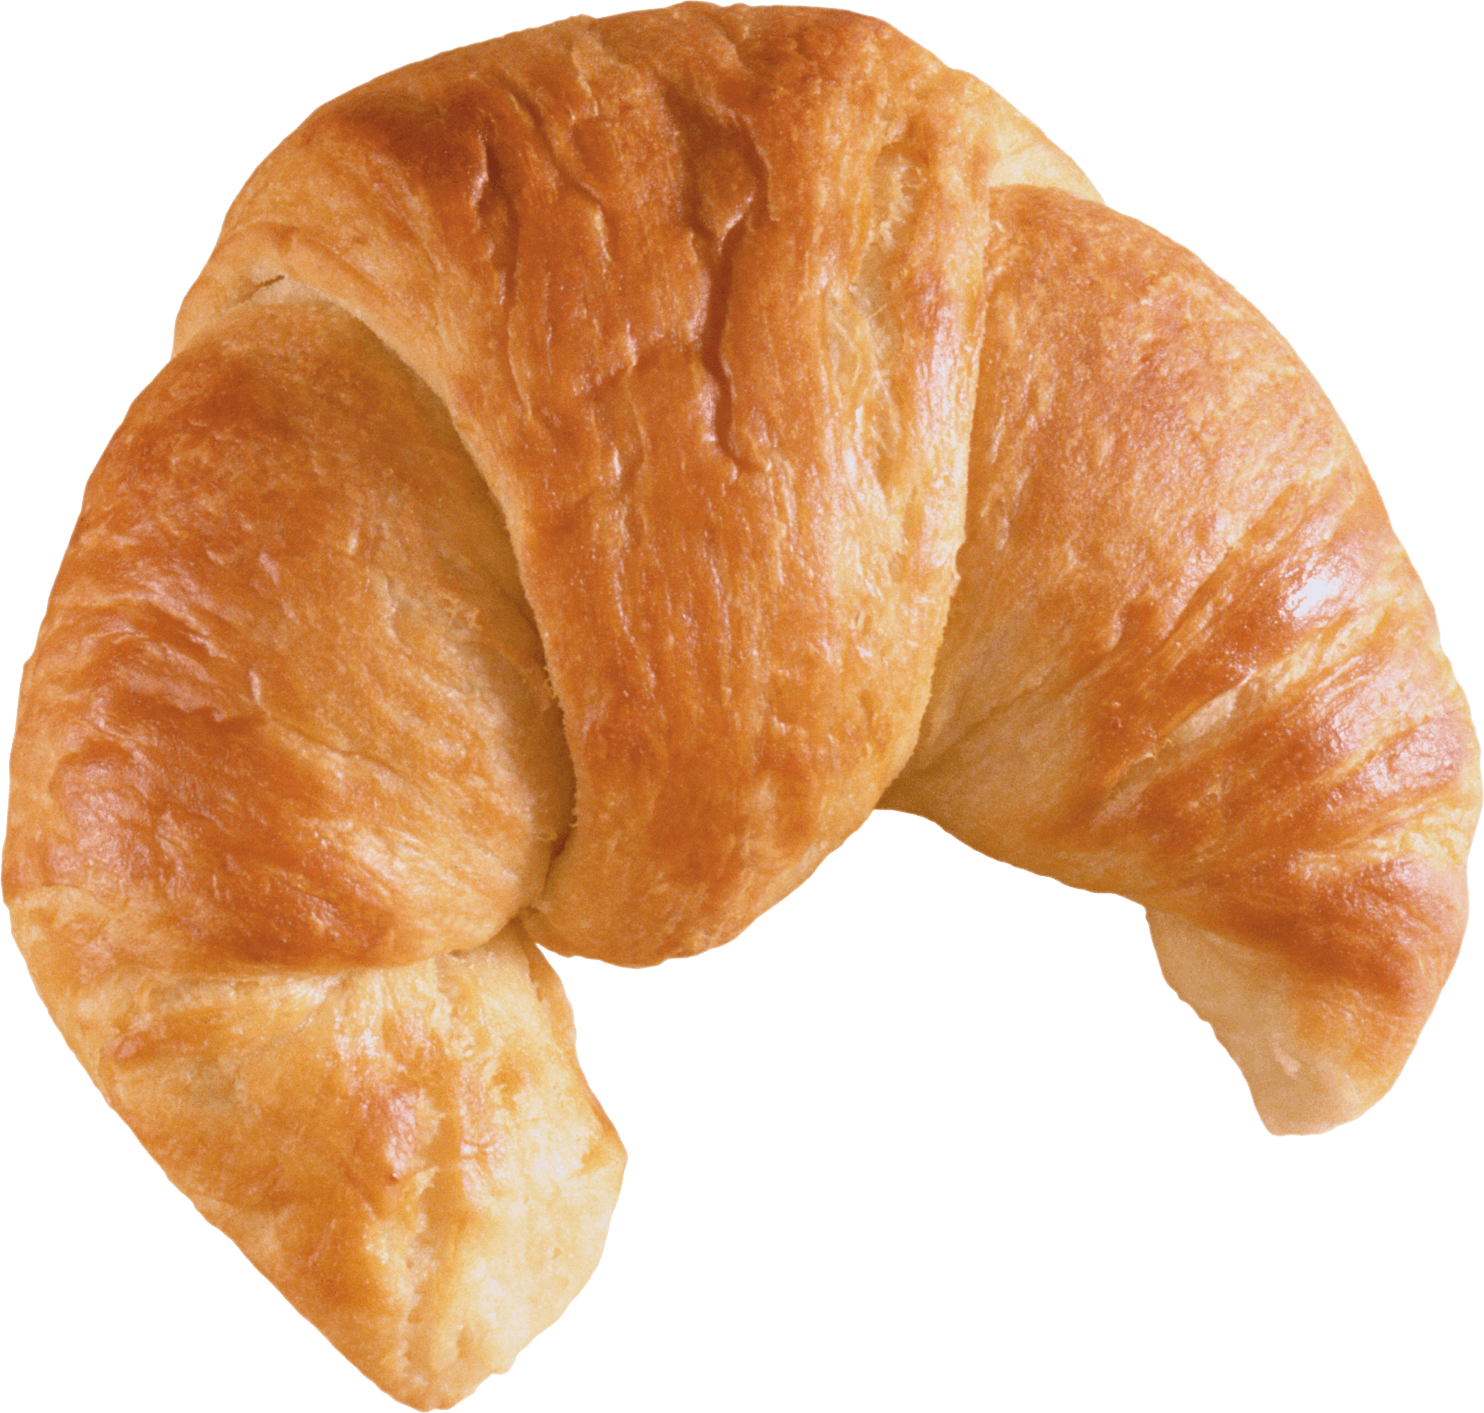 png library download Bread front png stickpng. Croissant transparent.